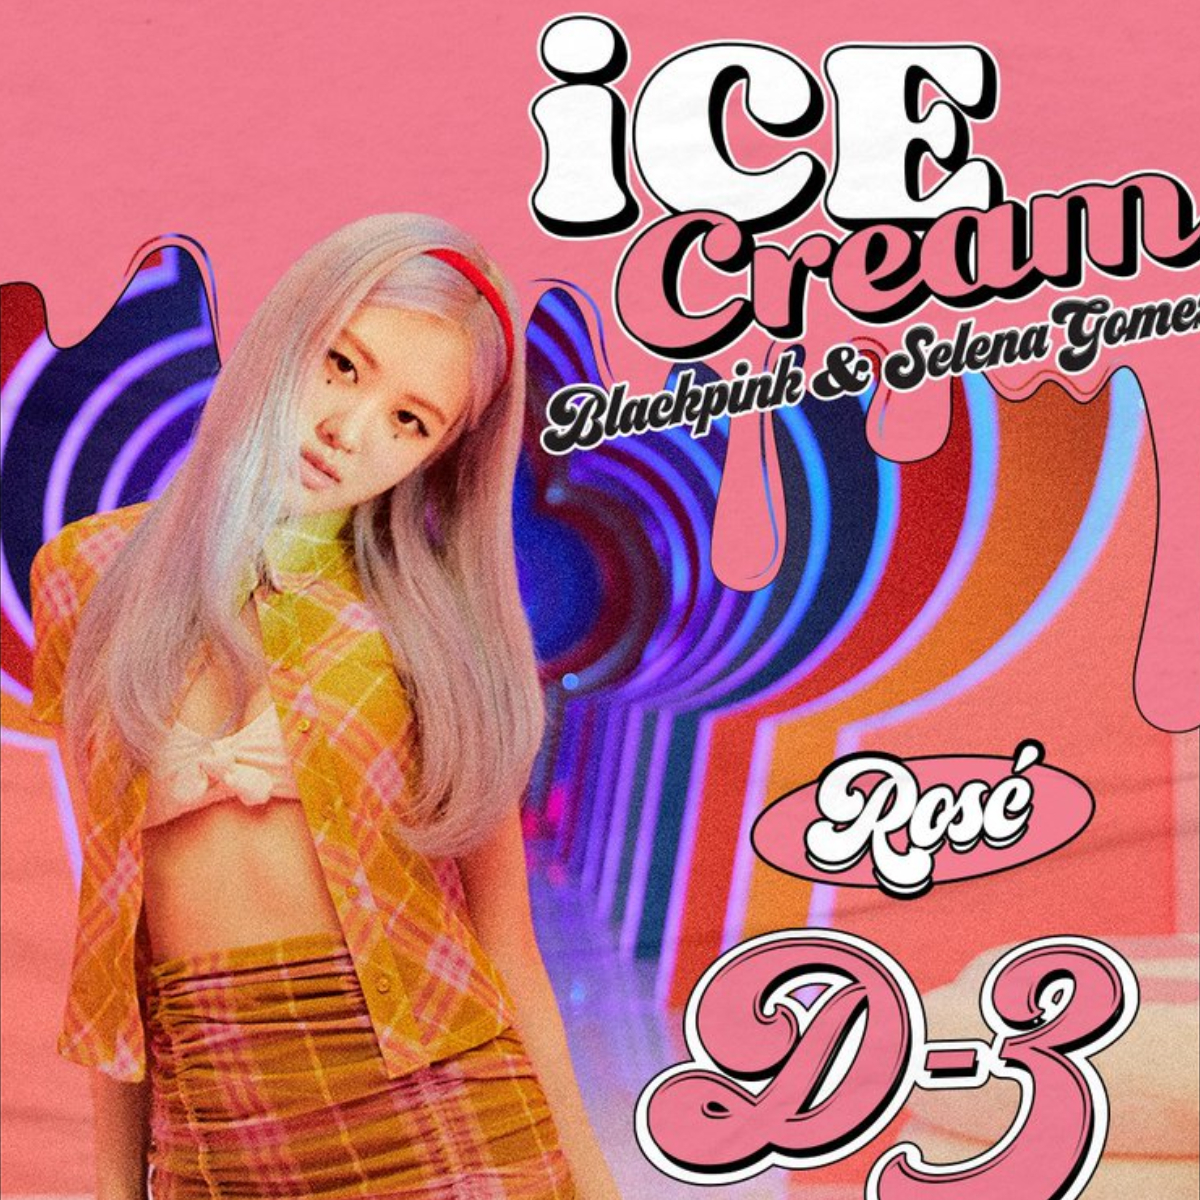 Ice Cream Blinks Impressed With Blackpink Member Rose As She Transforms A Plaid Top Into A Skirt In D3 Poster Pinkvilla